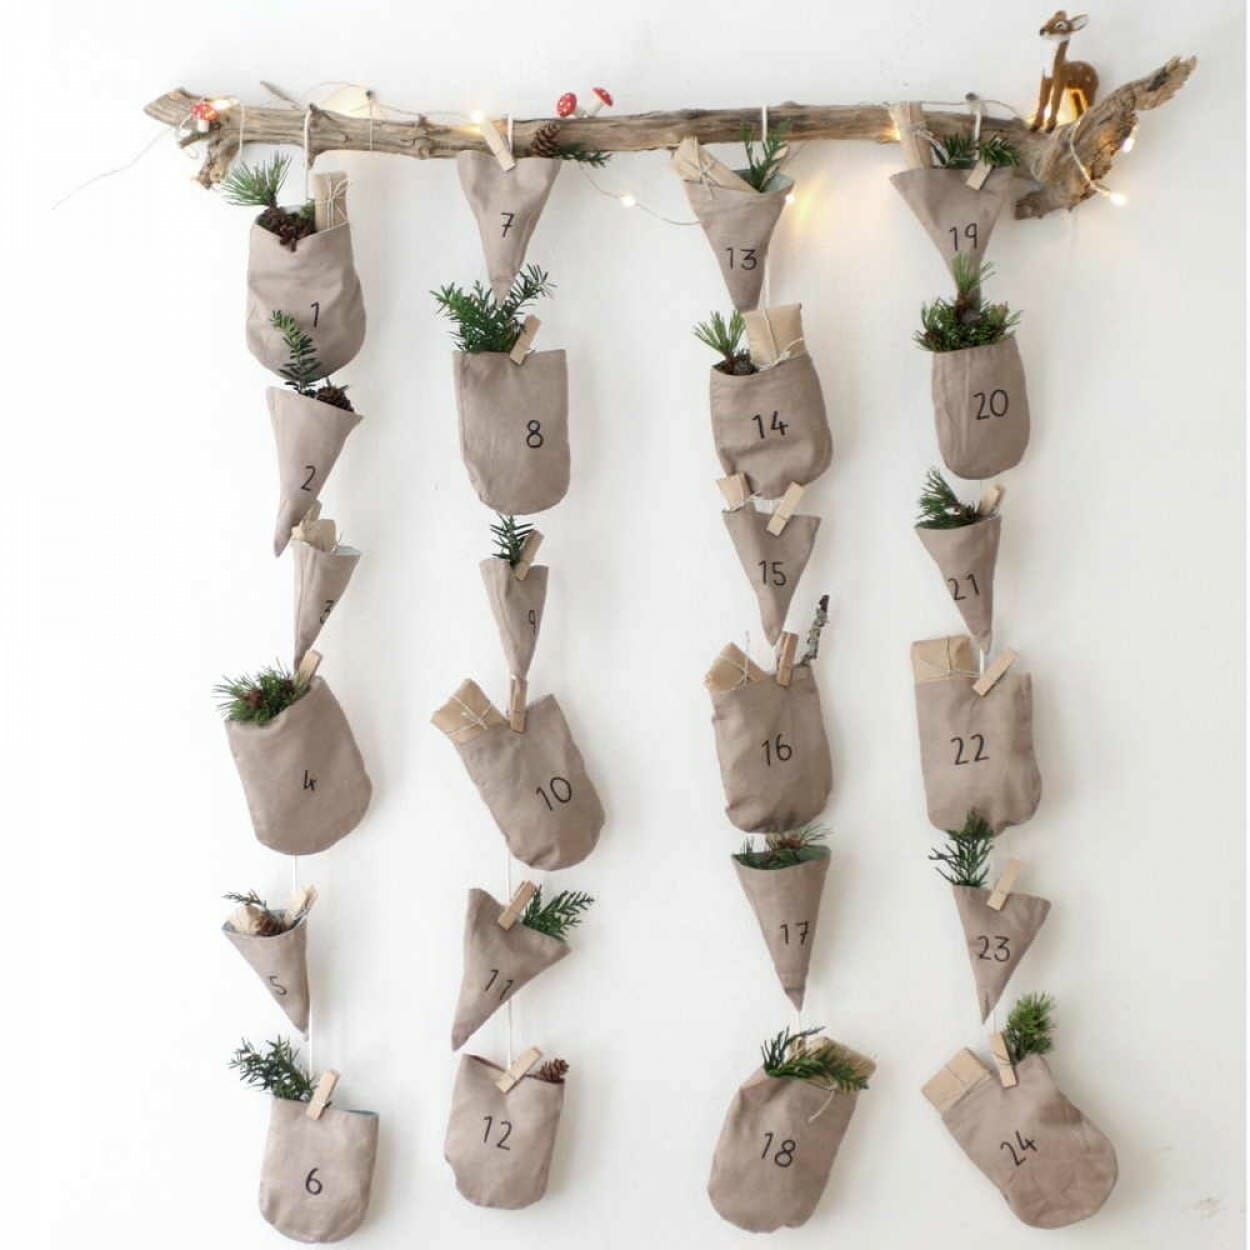 By Fabelab Once Completed You Can Turn Them Inside Out To Be Little Adorable Hand Puppets Christmas Calendar Christmas Advent Calendar Wood Advent Calendar